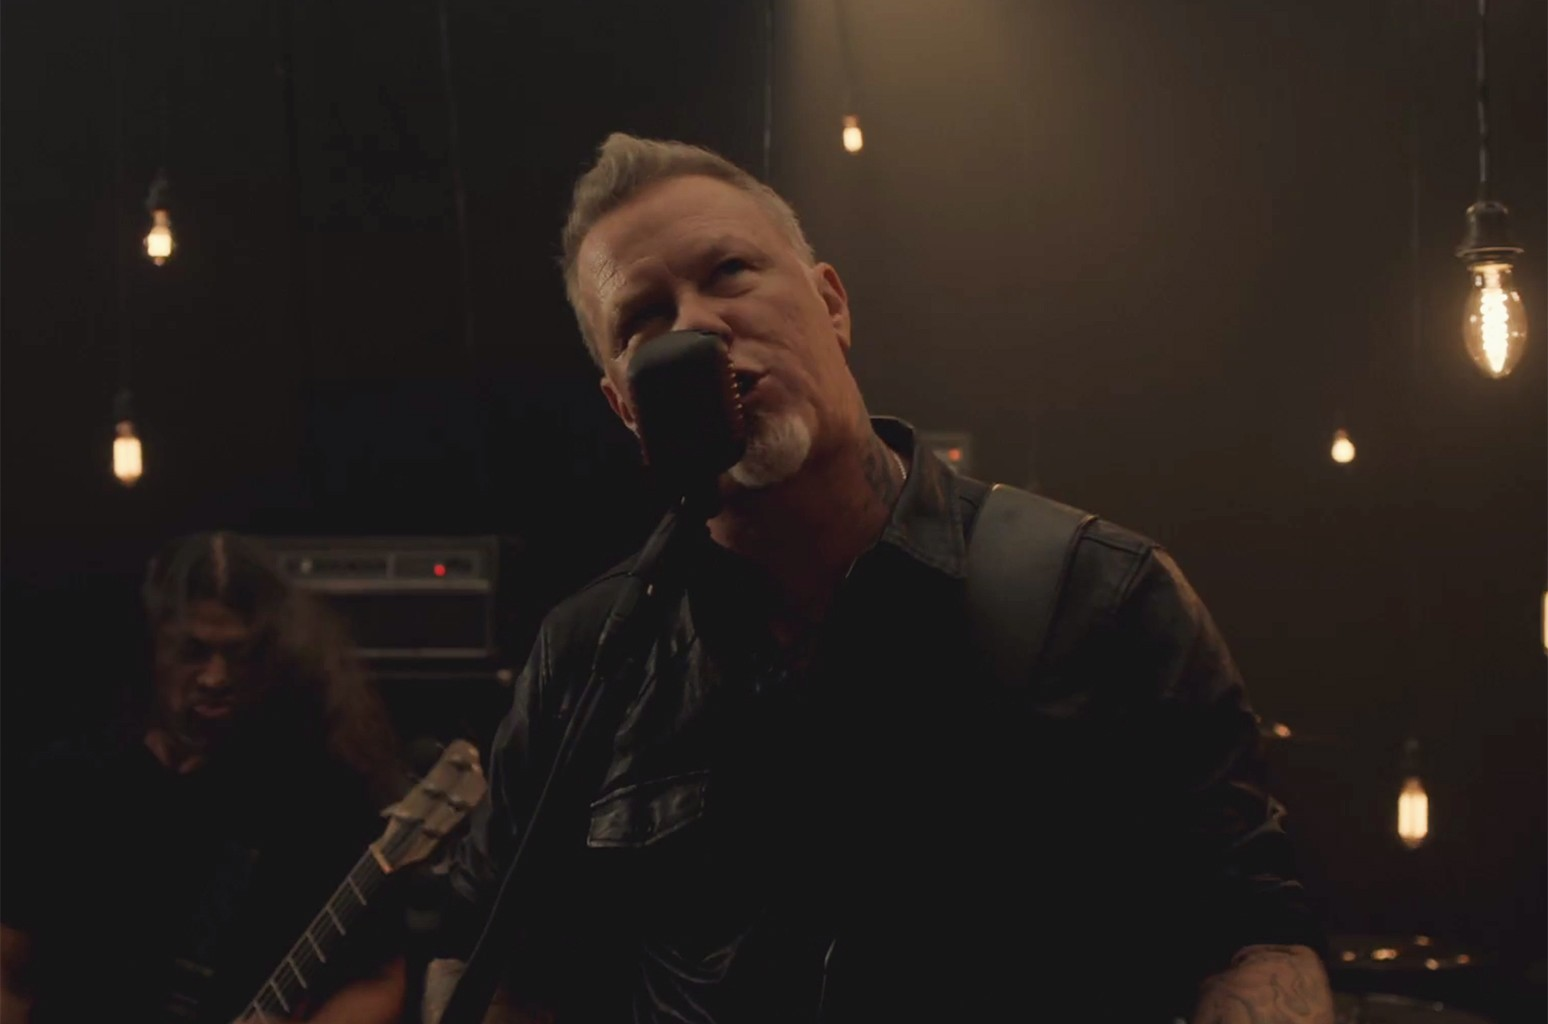 Metallica in the video for Moth Into Flame